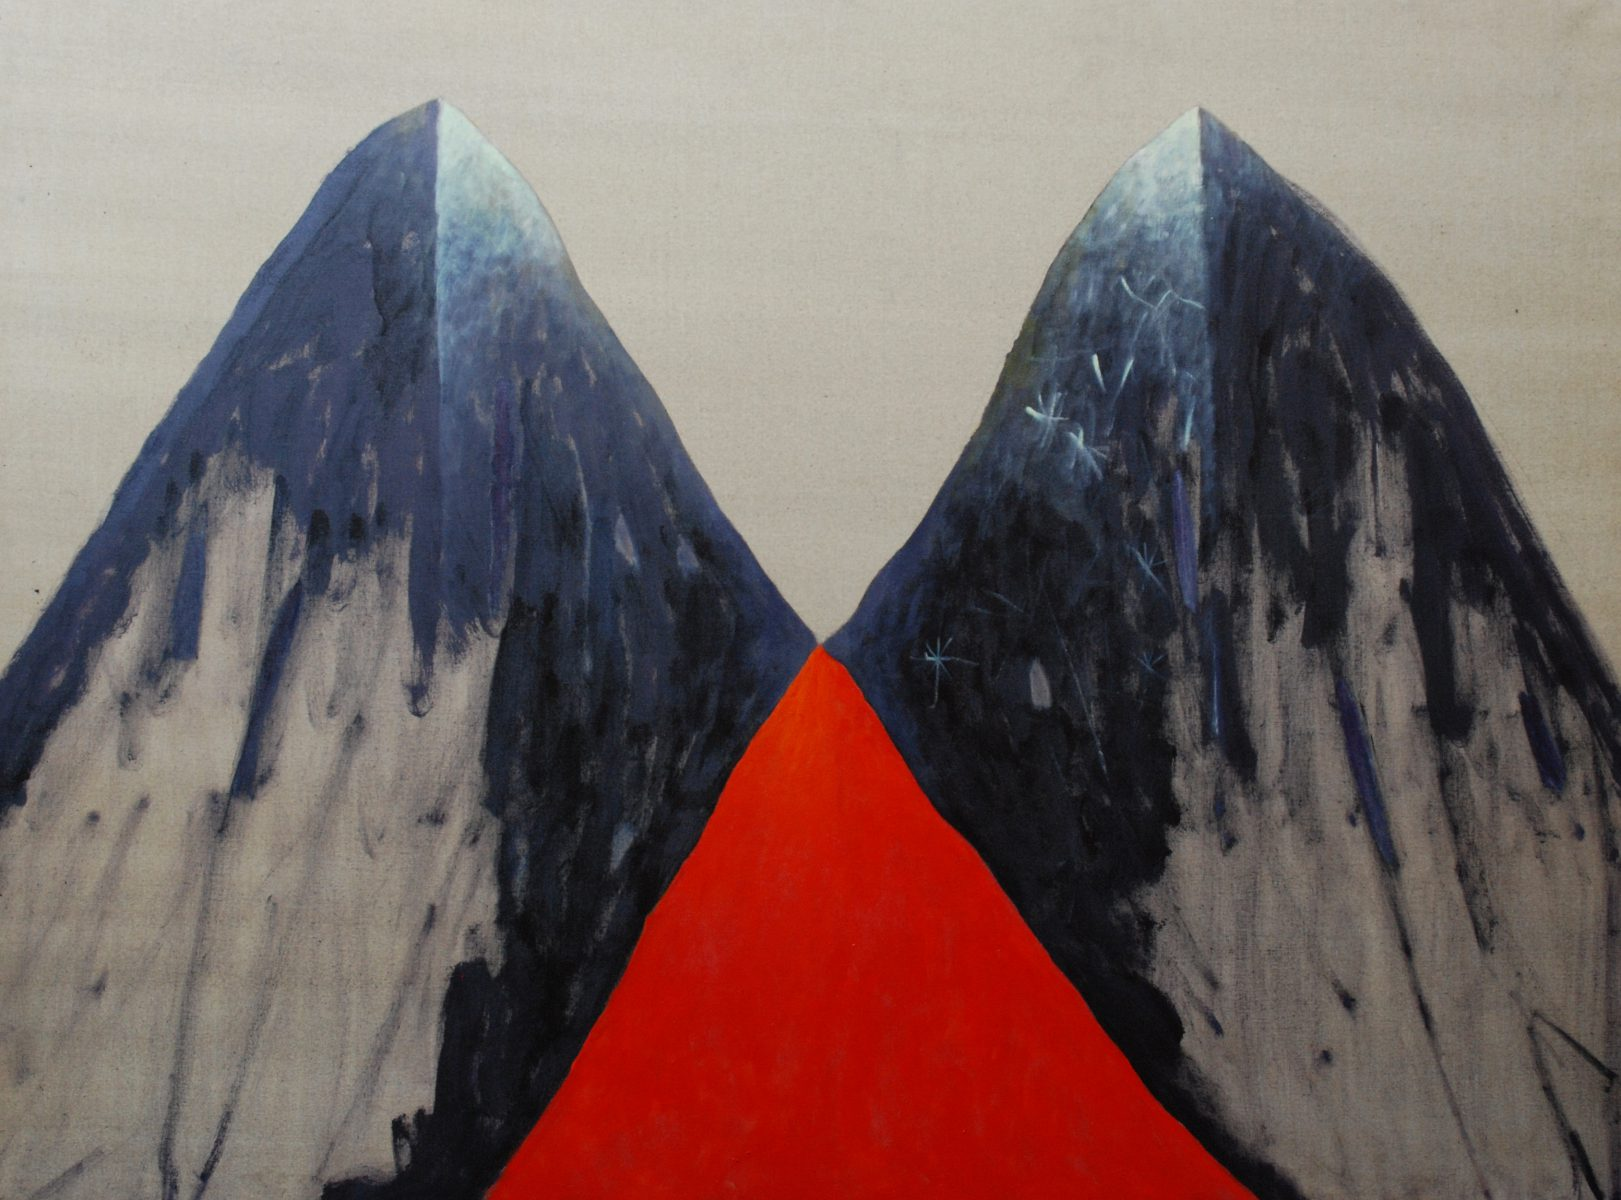 Pierantonio Verga, Solemn, enamel on canvas, 150x200cm, 2011